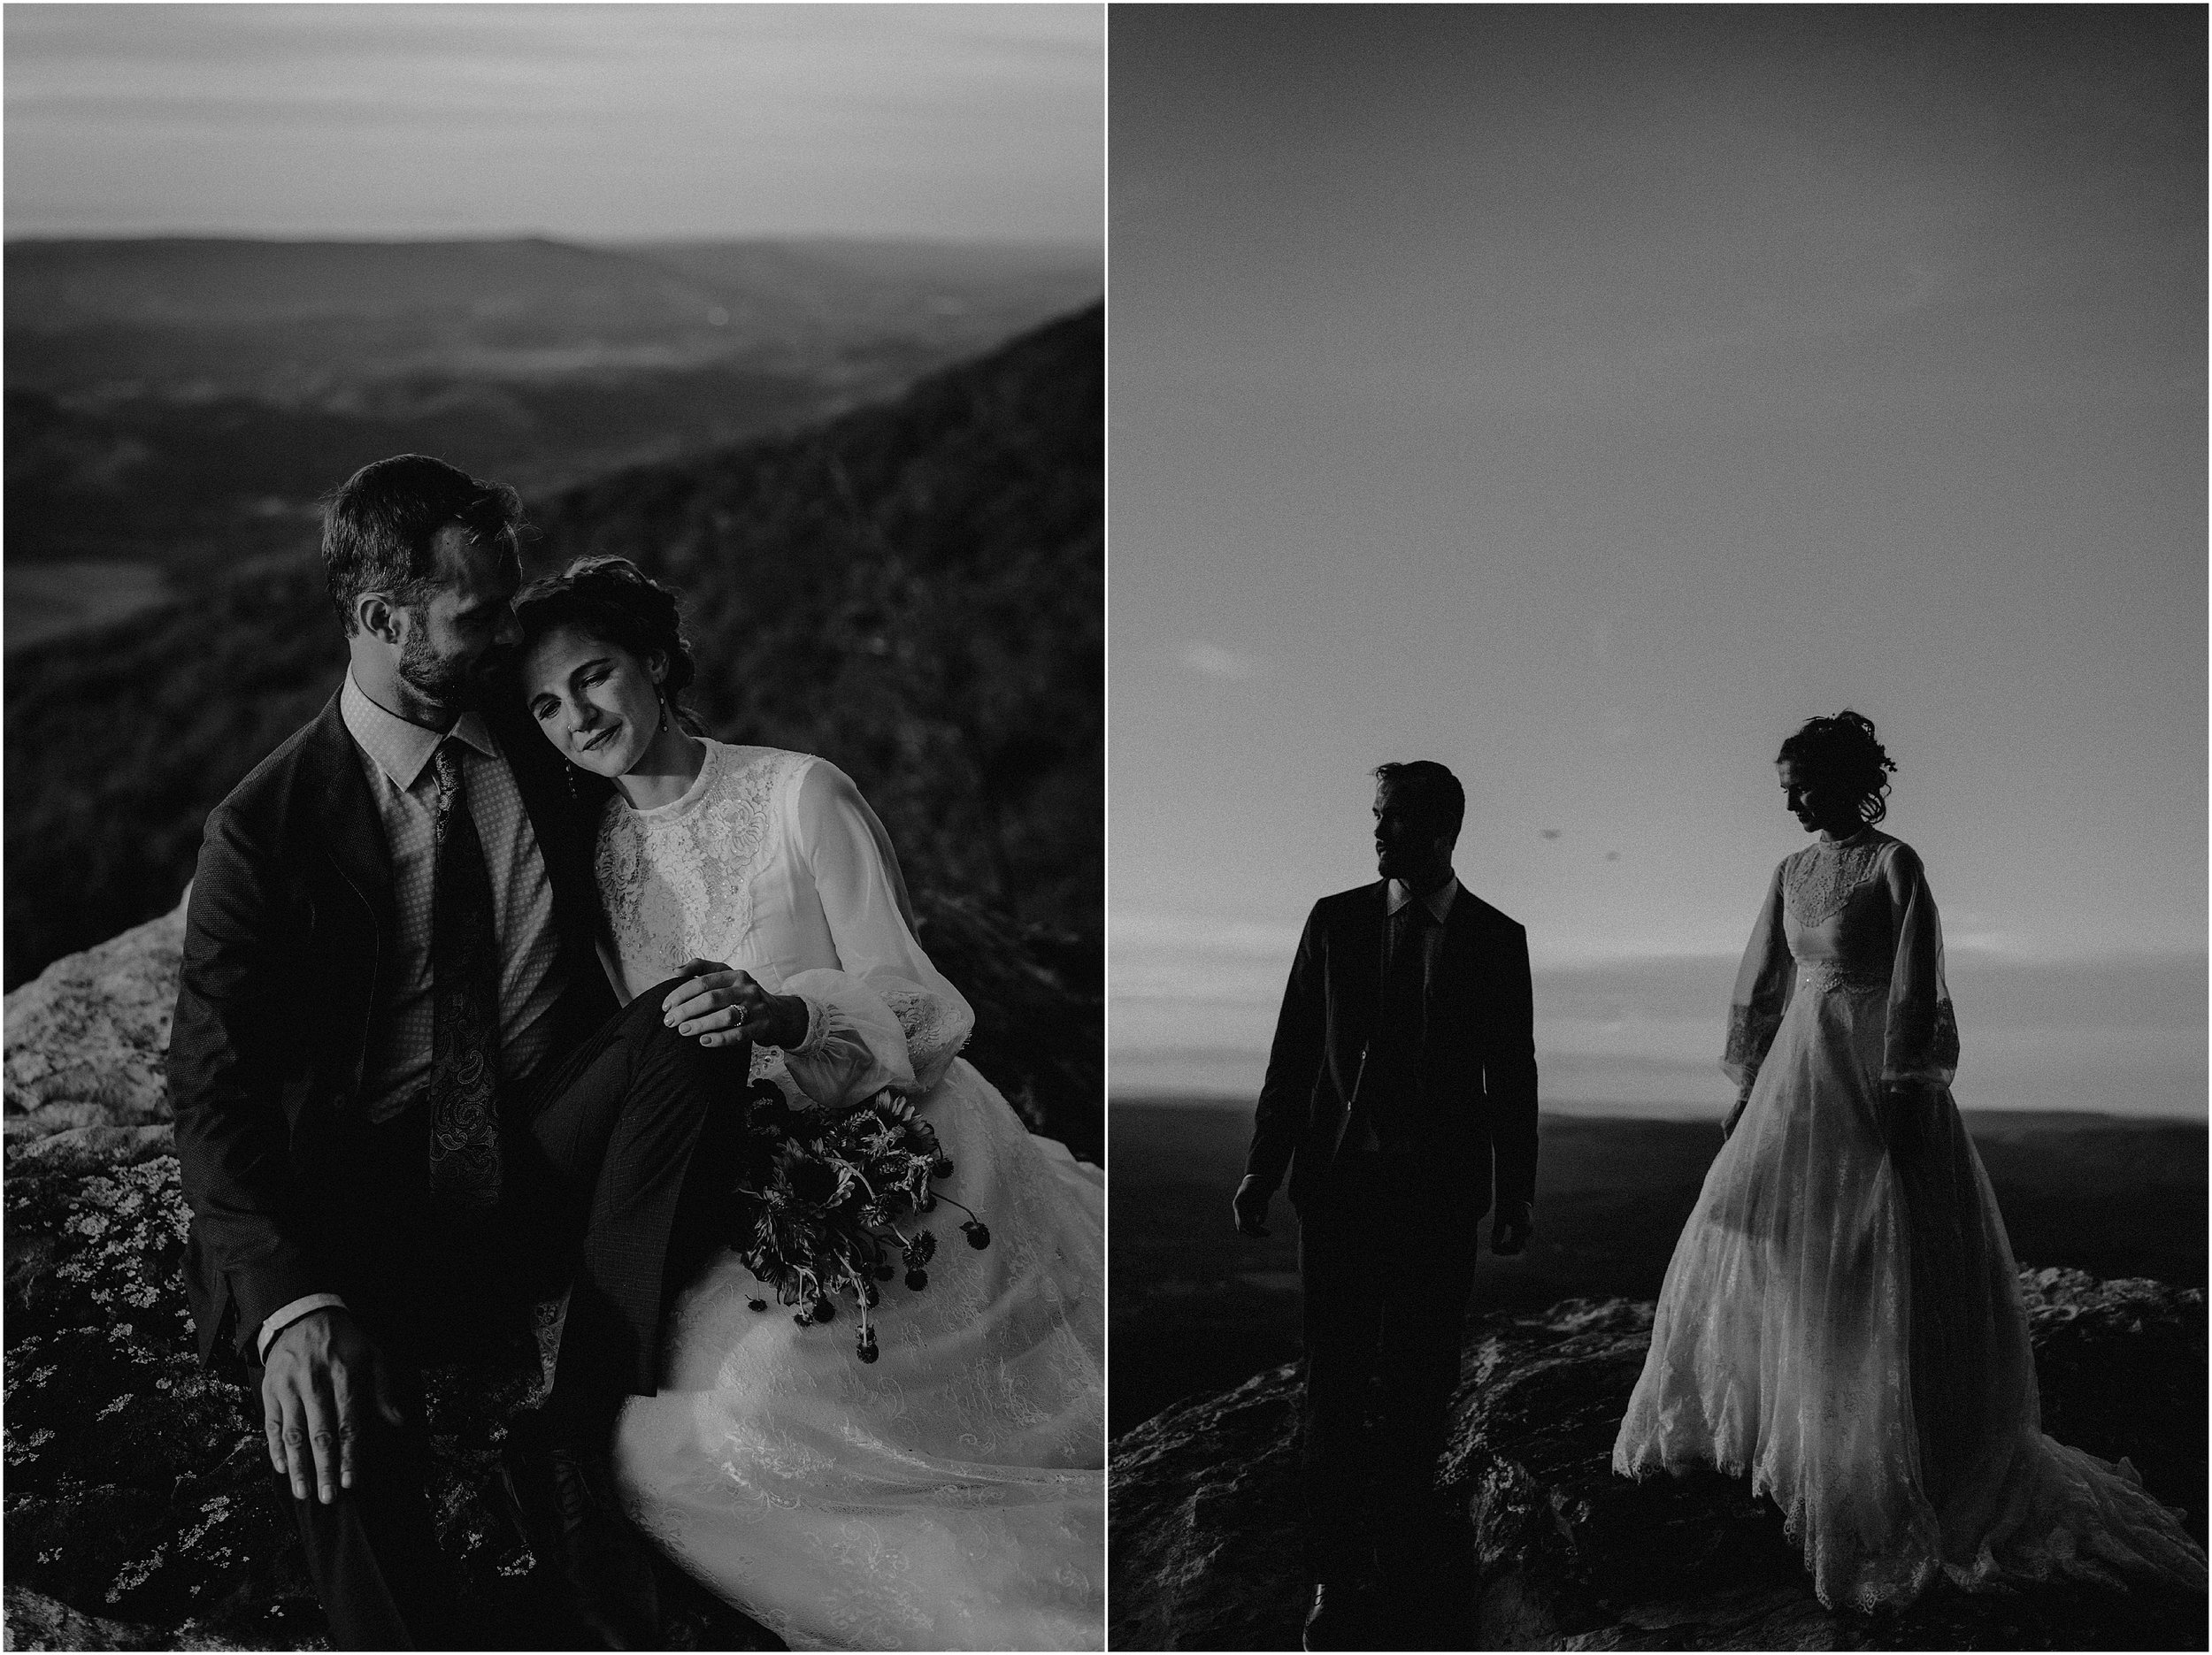 Dramatic black and white images of the bride and groom cliffside on Lookout Mountain, Georgia